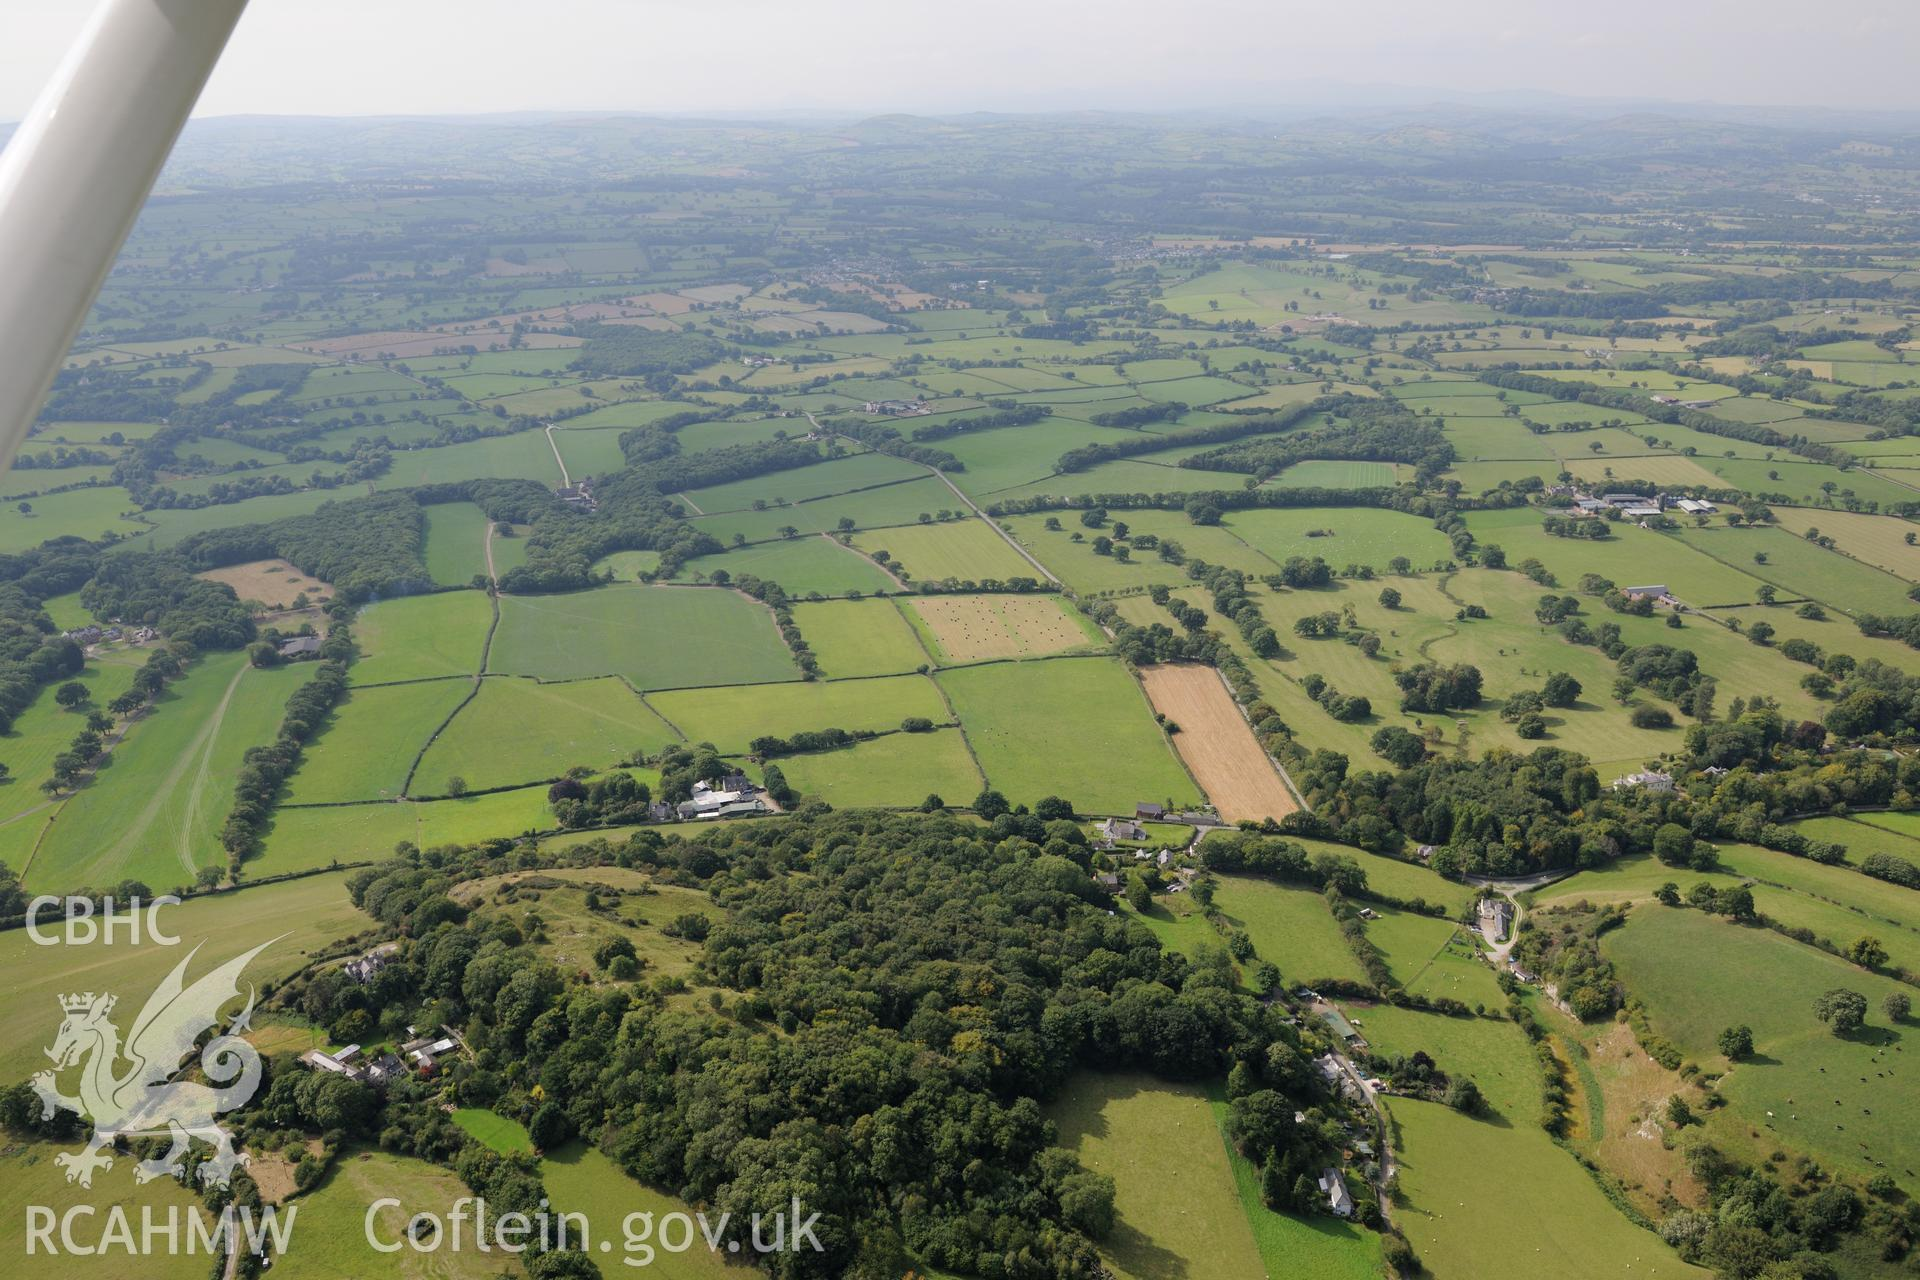 Craig Tremeirchion, including site of Cae-Gwyn cave and Ffynnon Beuno cave. Oblique aerial photograph taken during the Royal Commission's programme of archaeological aerial reconnaissance by Toby Driver on 11th September 2015.